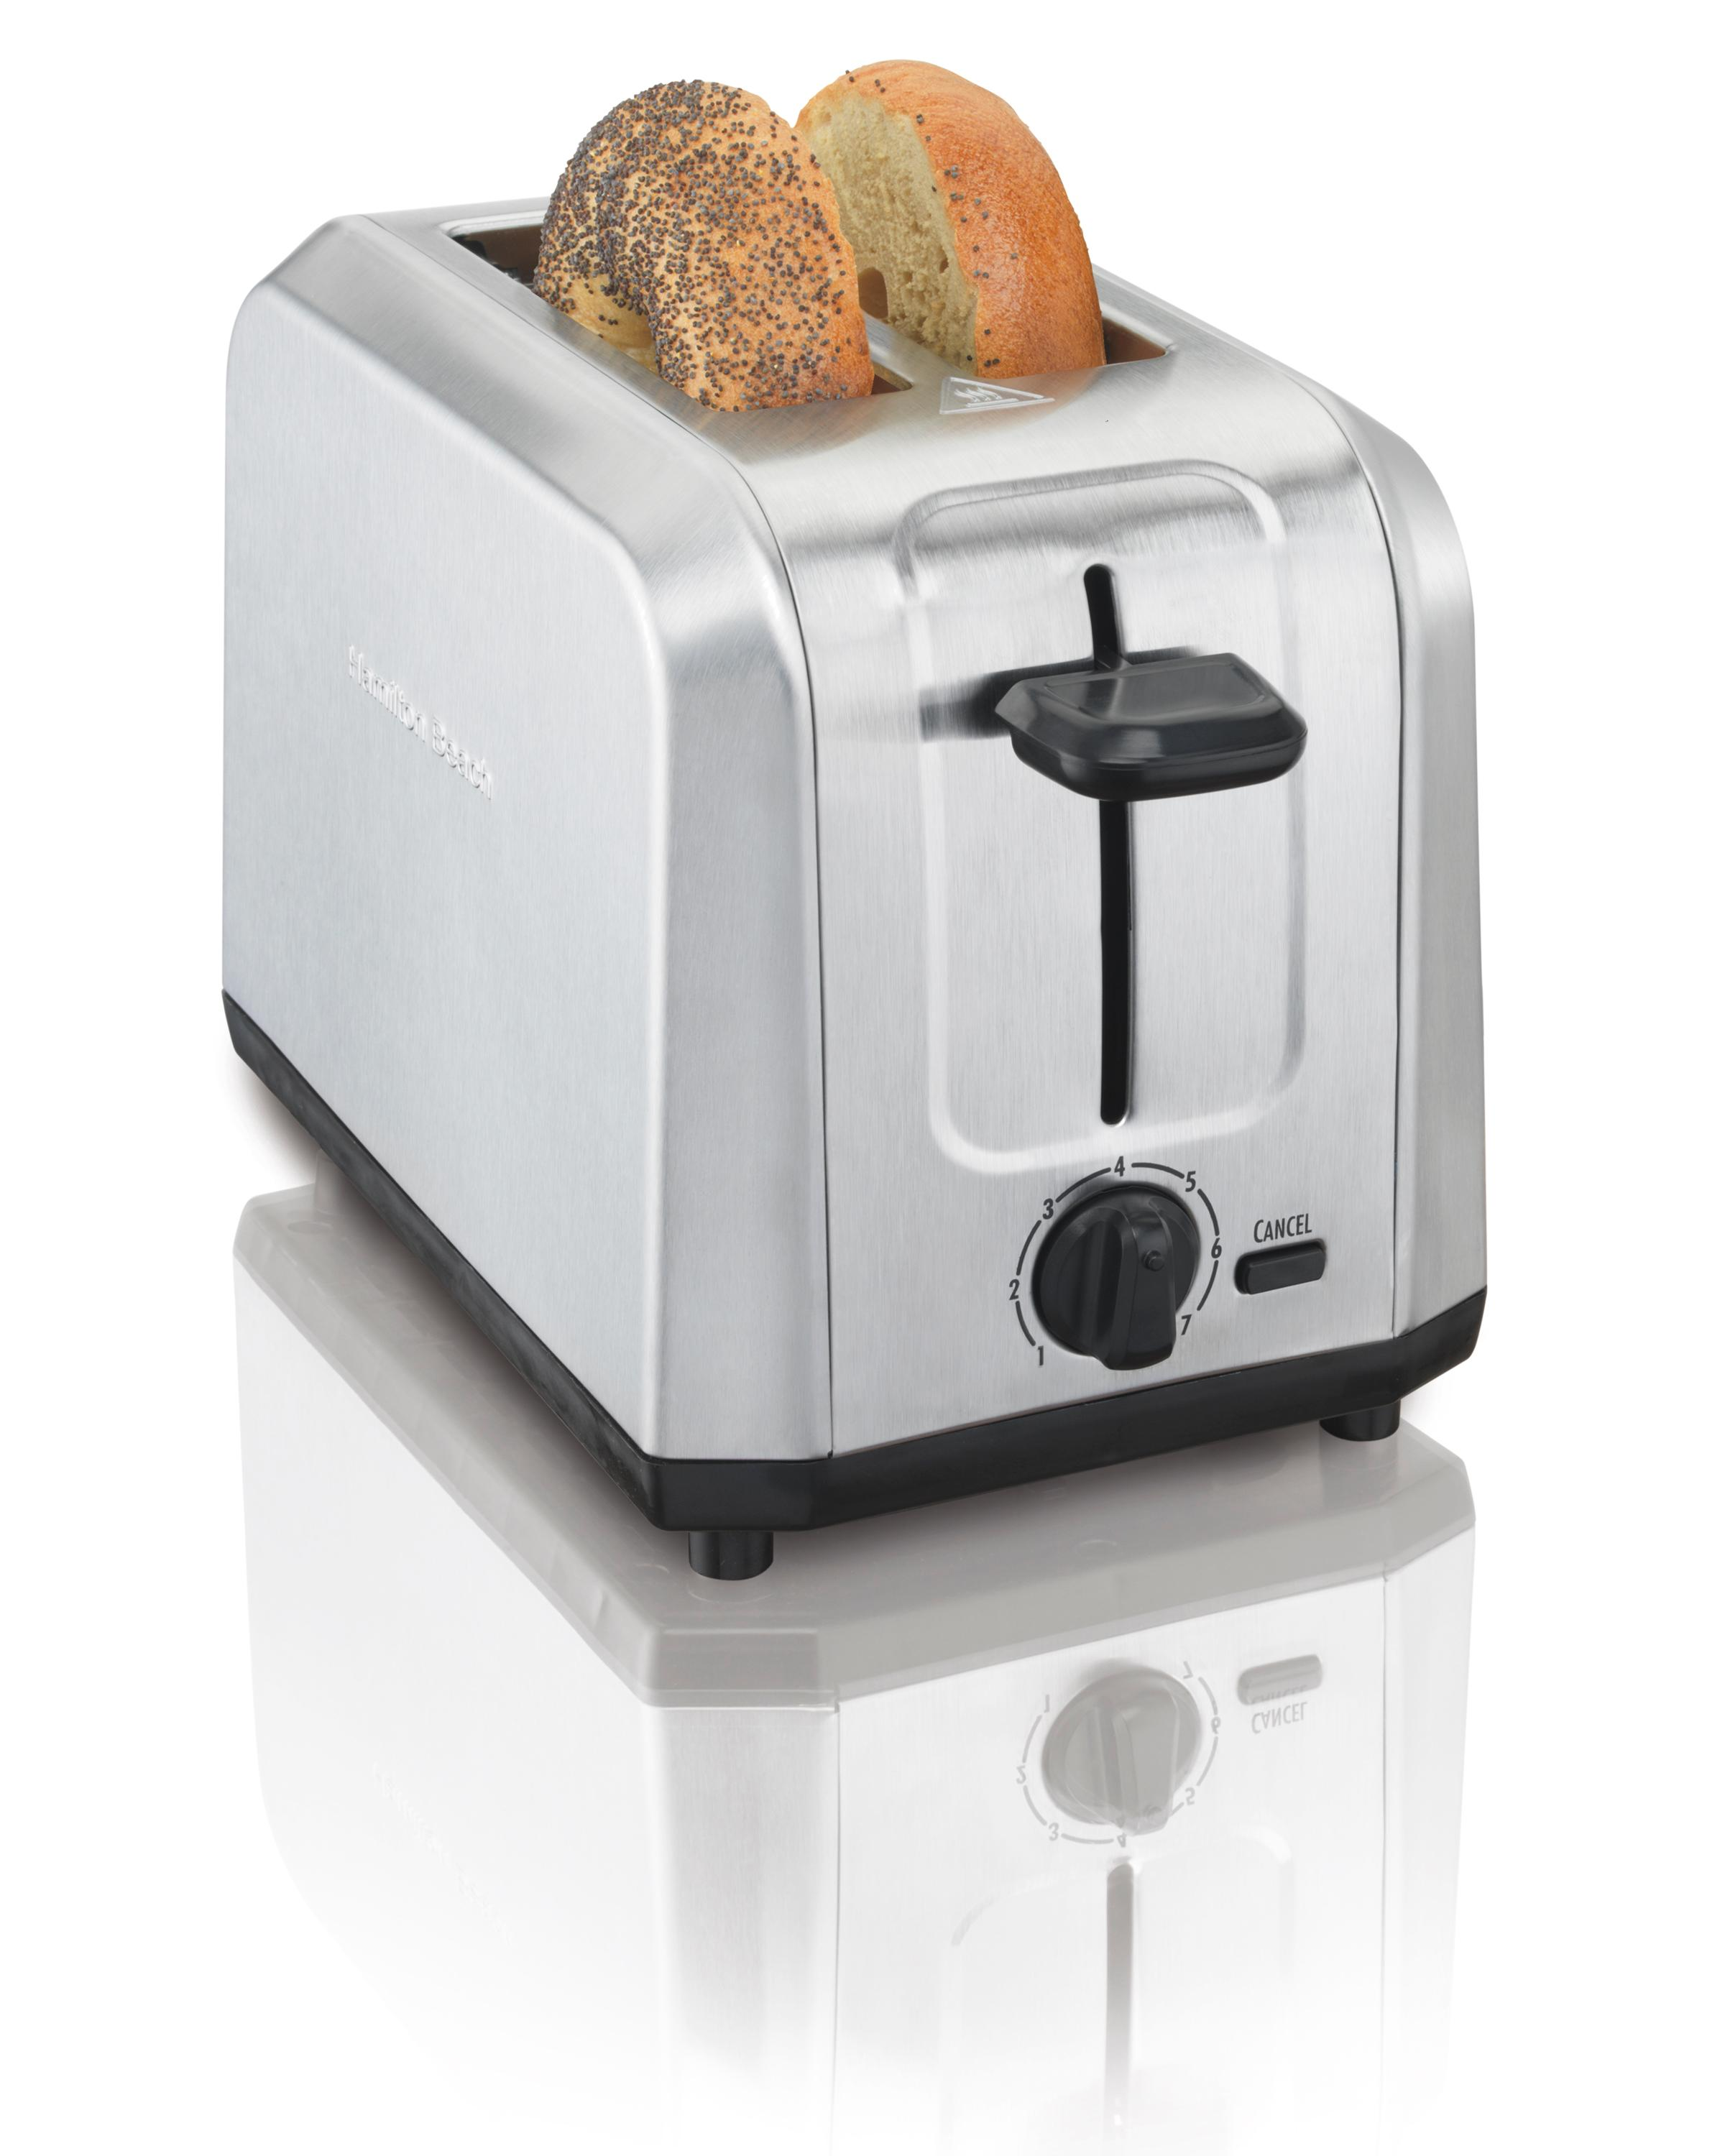 blog mdock docking hdds connected toaster announce of freecom to no laptop uk range with drive quality high stations inserted hard duplicator